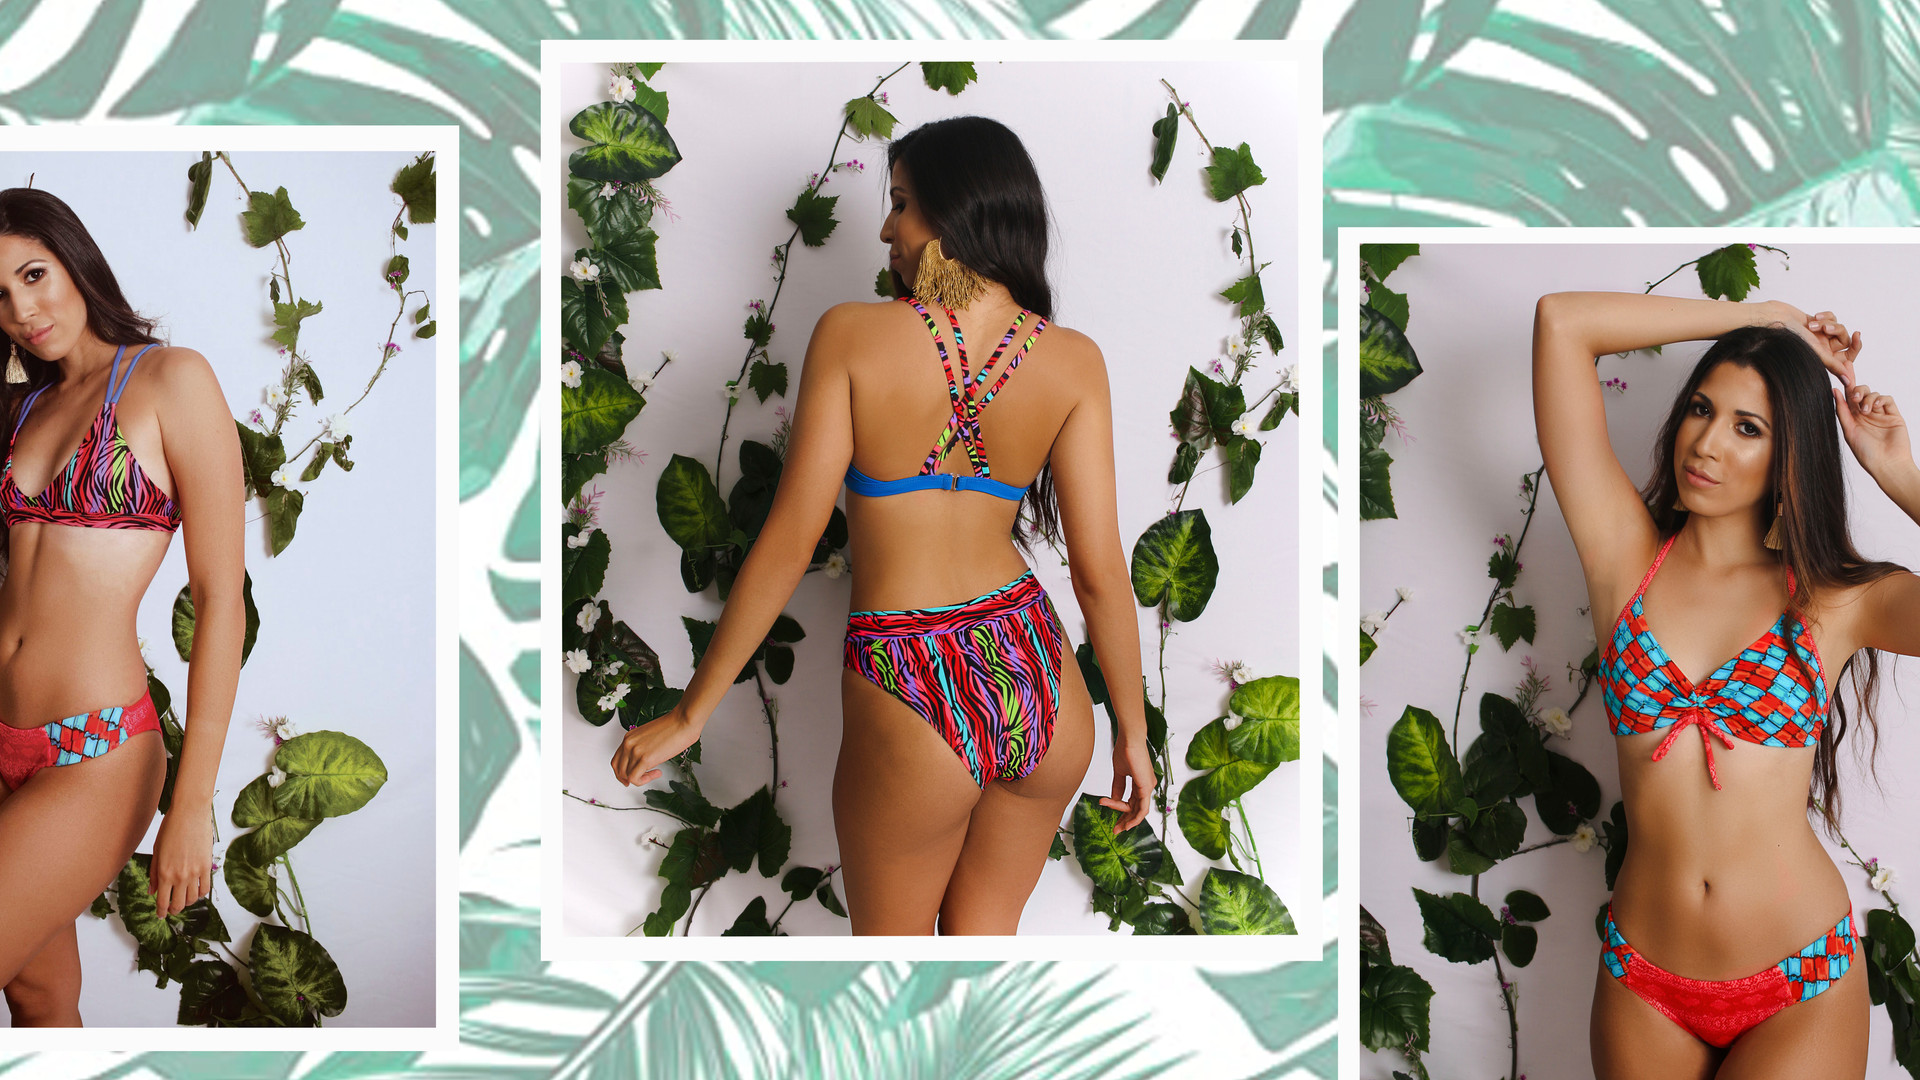 Mix and Match Bikinis Level up your look with making your own combination!